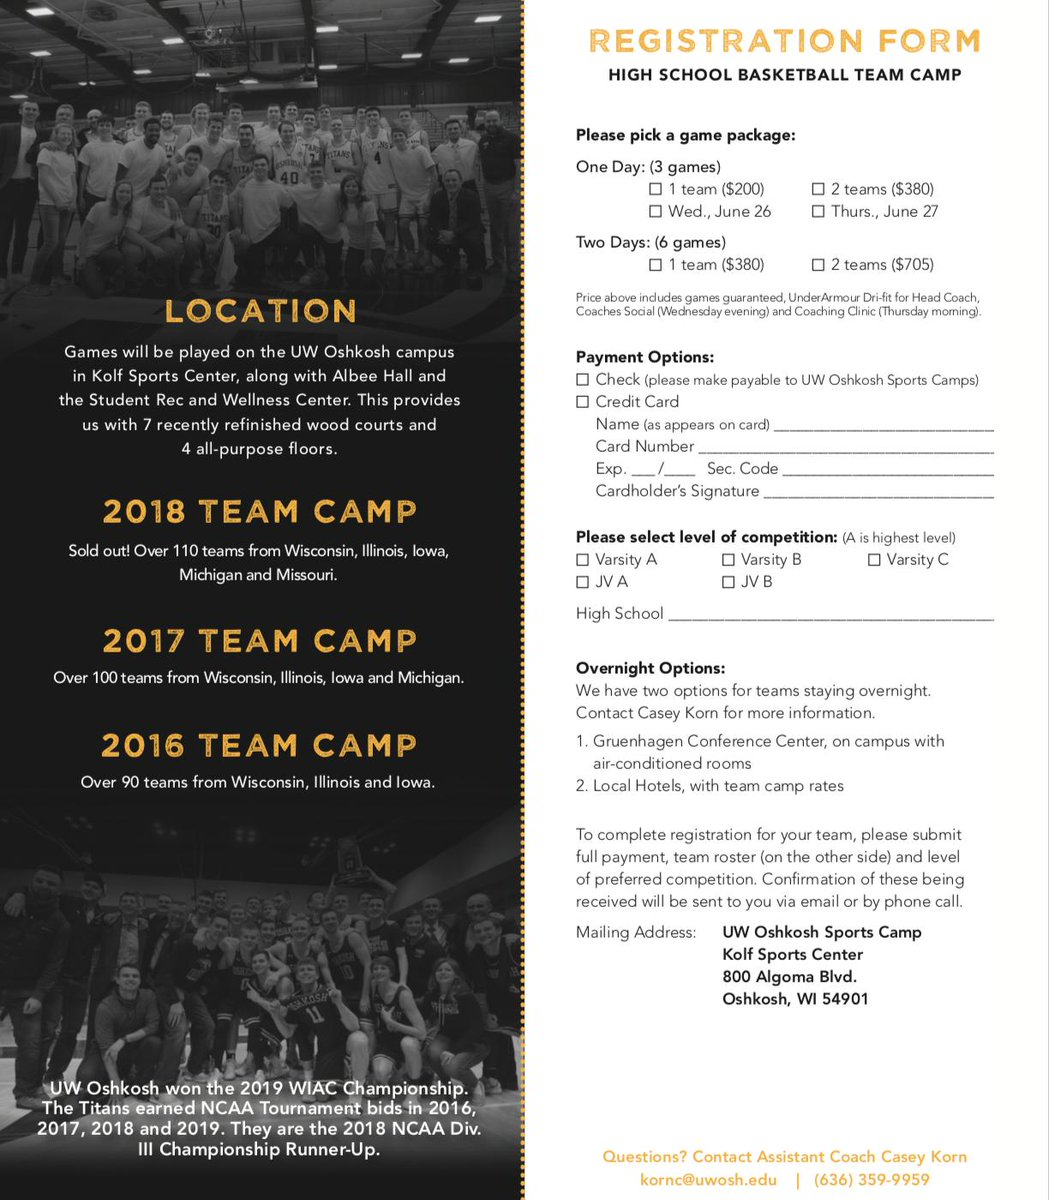 Our Annual Team Camp is set for June 26-27, 2019! In 2018, we had 110 teams from WI, IL, IA, MI, & MO. We would be fired up to host your program this June! https://bit.ly/2Un2n45